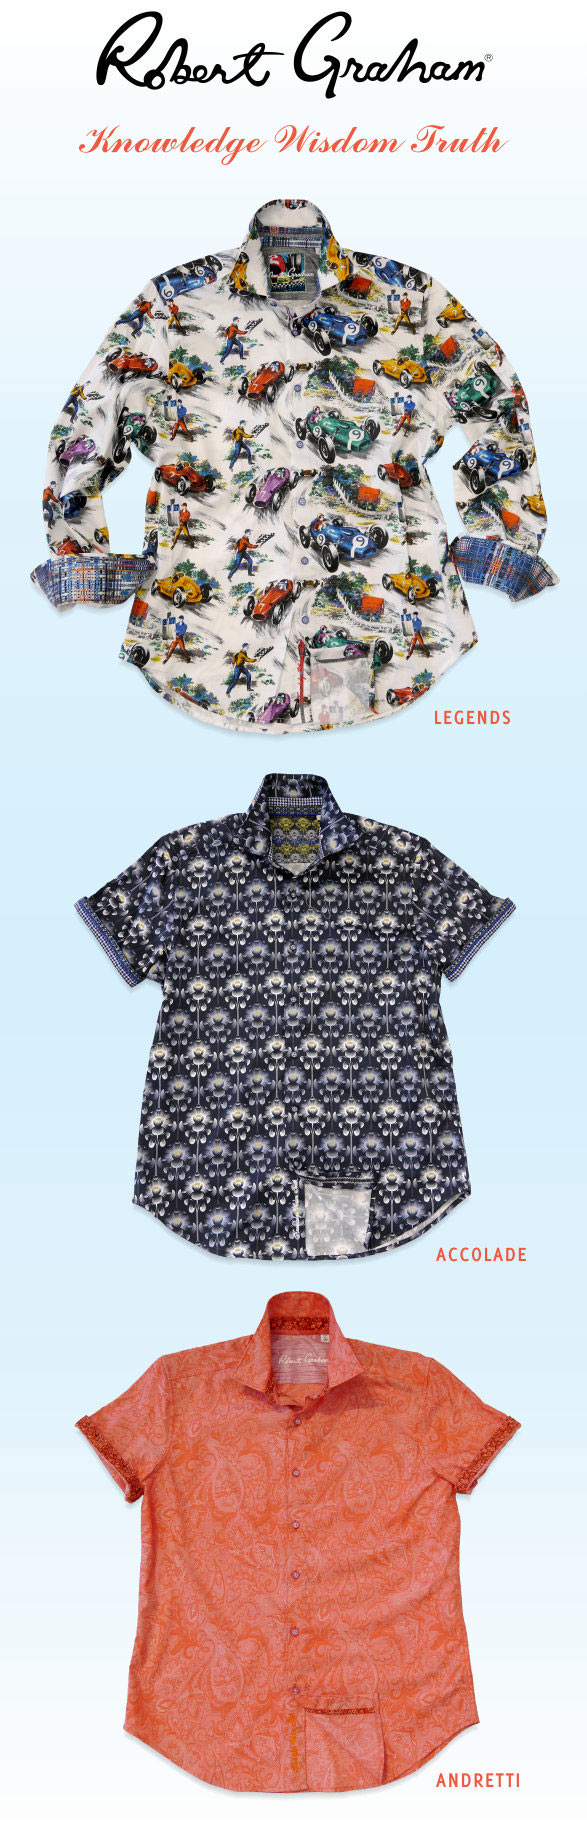 Robert Graham shirts - Legends, Accolade and Andretti